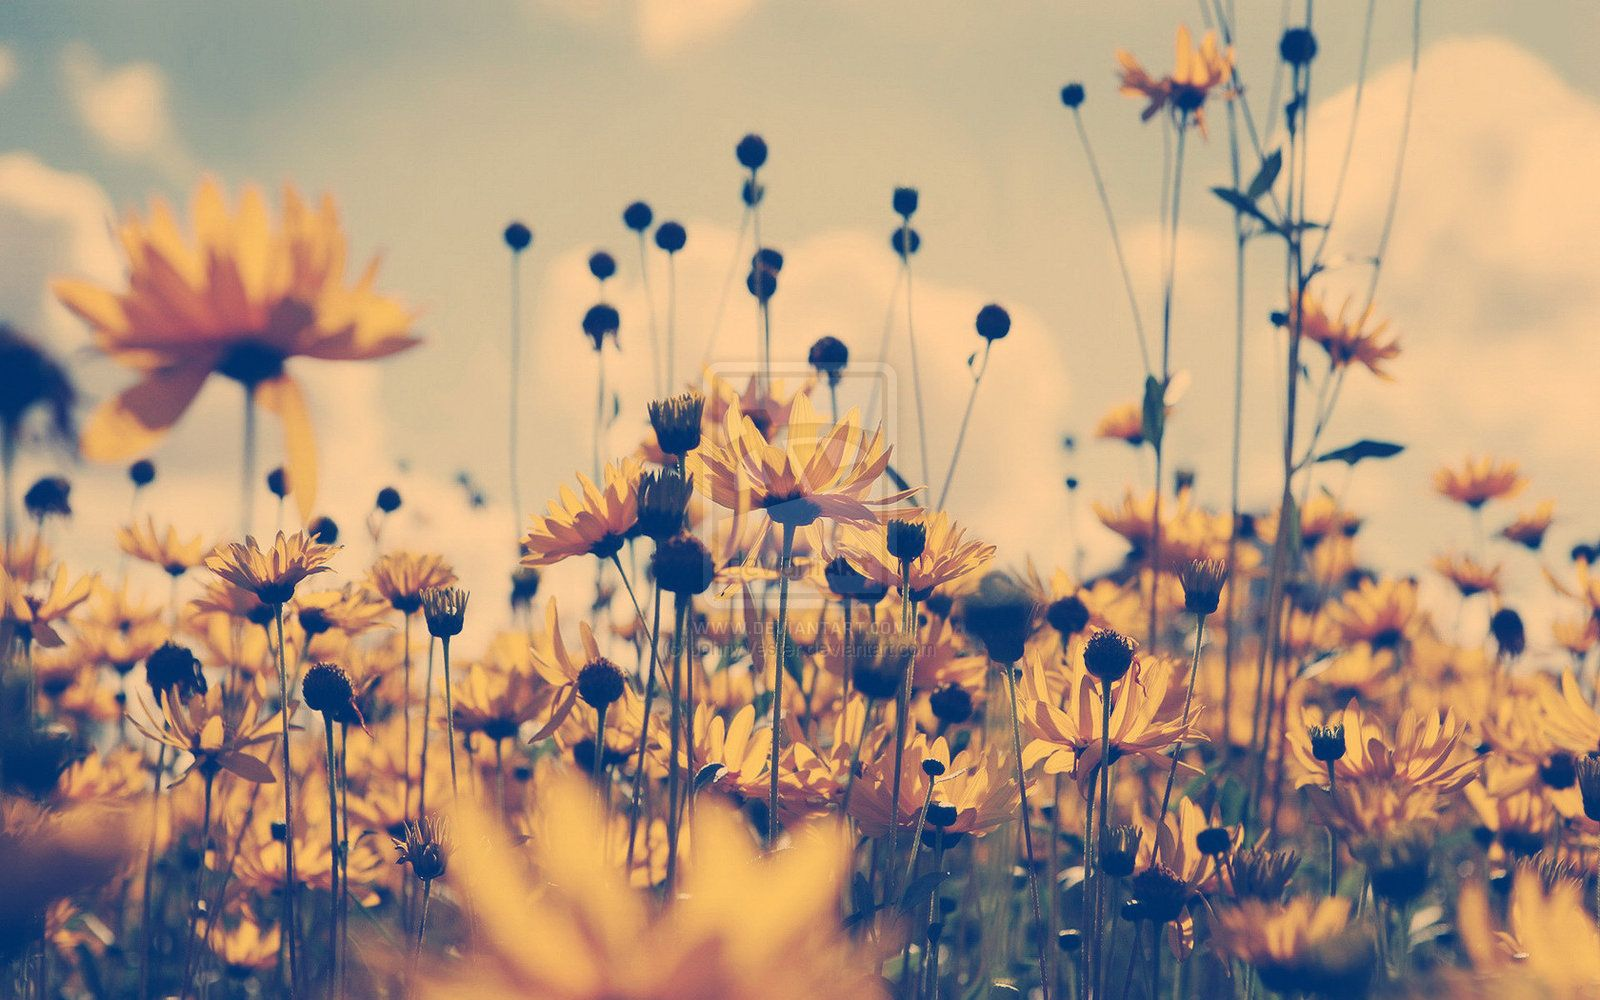 Photography Tumblr Vintage Flowers Hd Images 3 HD Wallpapers